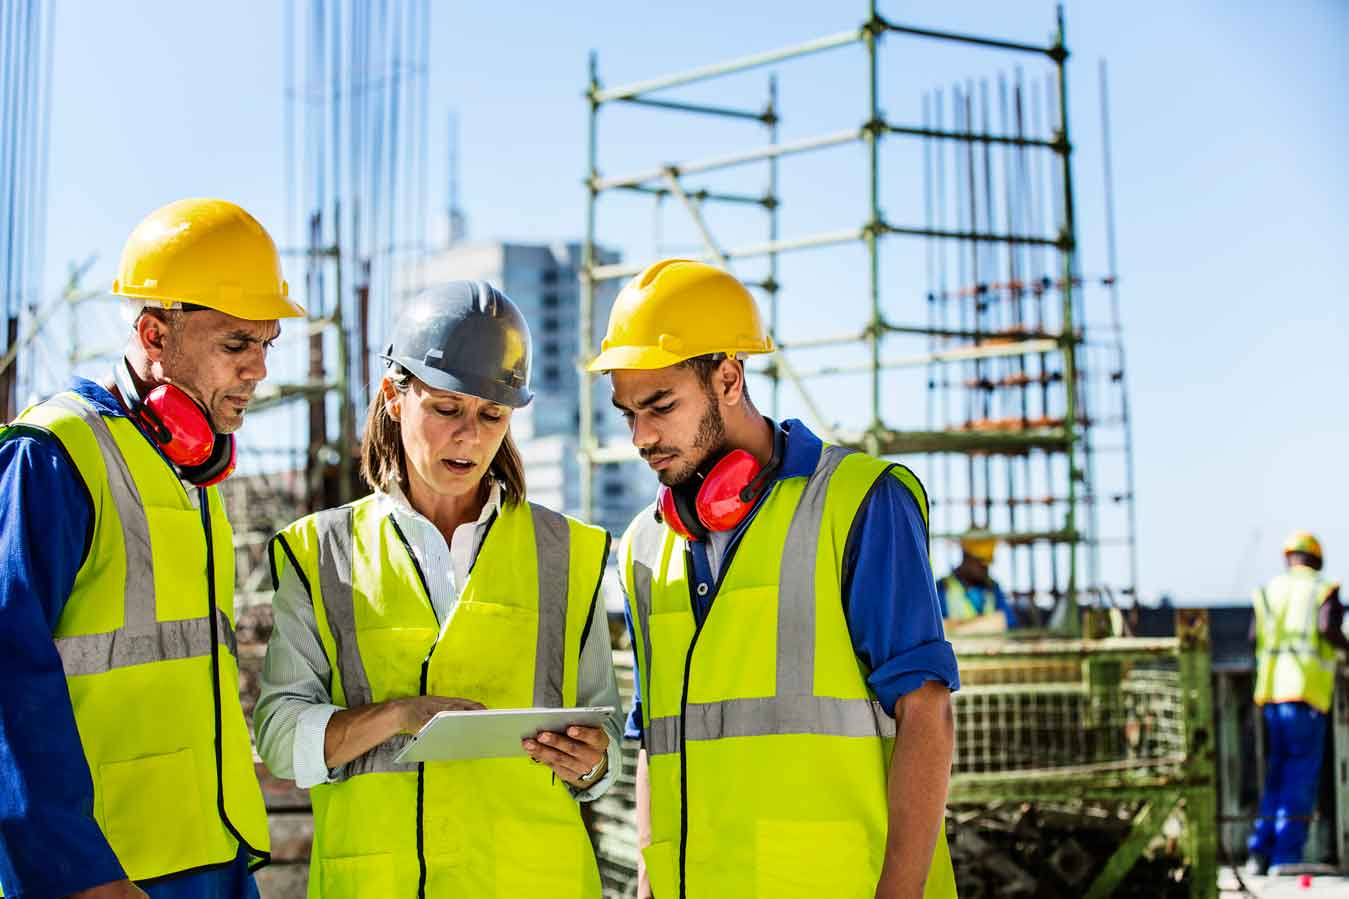 The Role of High-Visibility Clothing in the Workplace